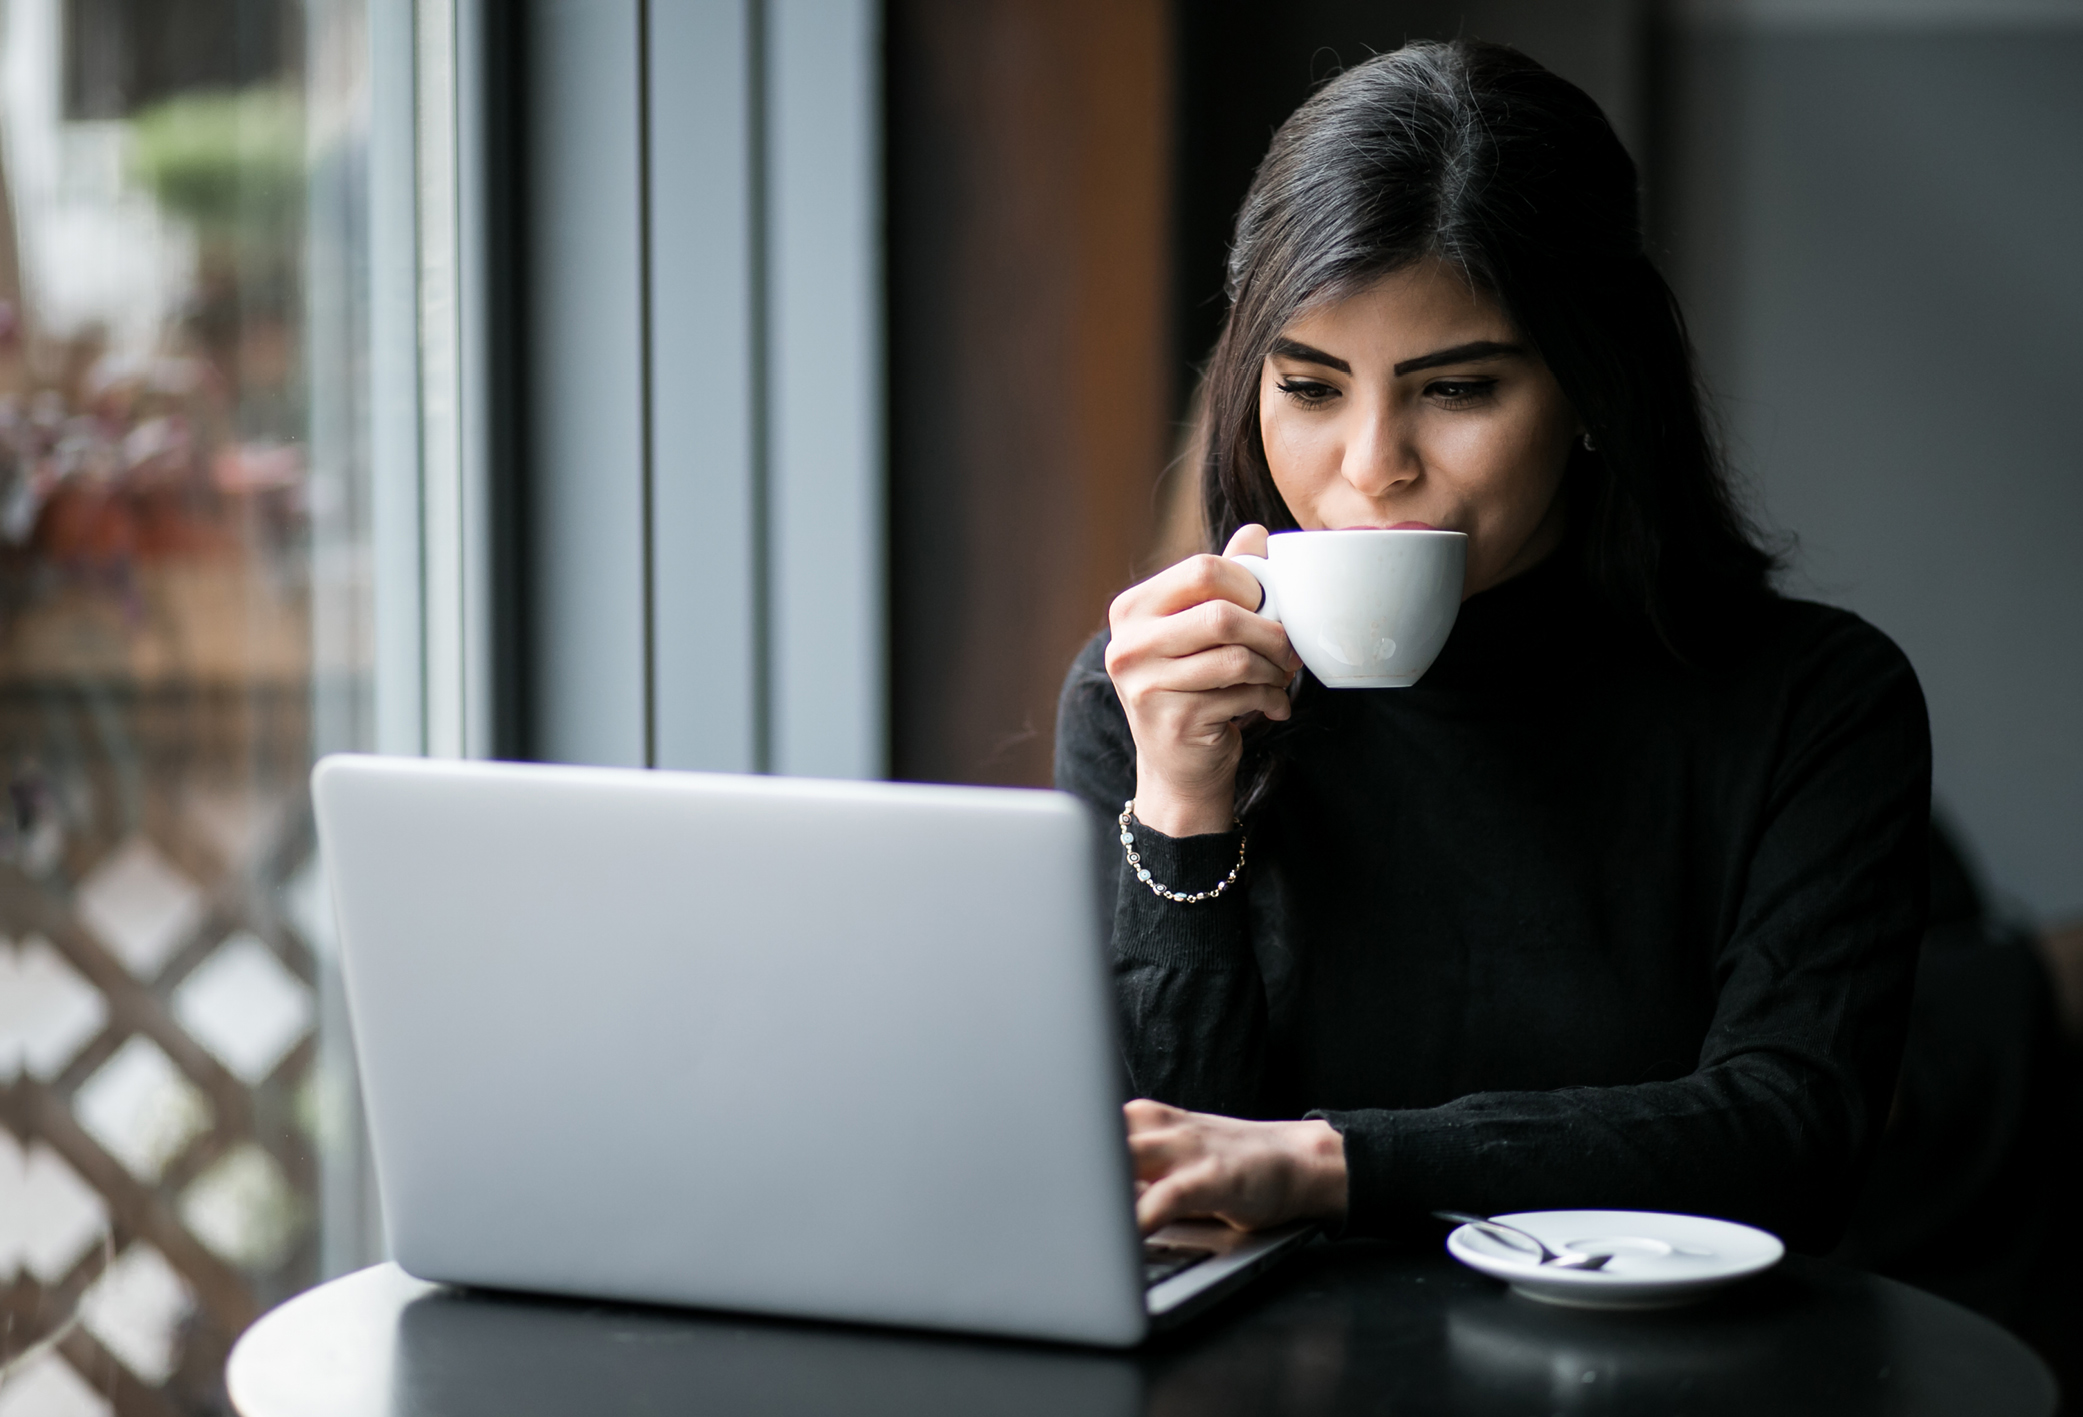 Woman working at computer in coffee shop.